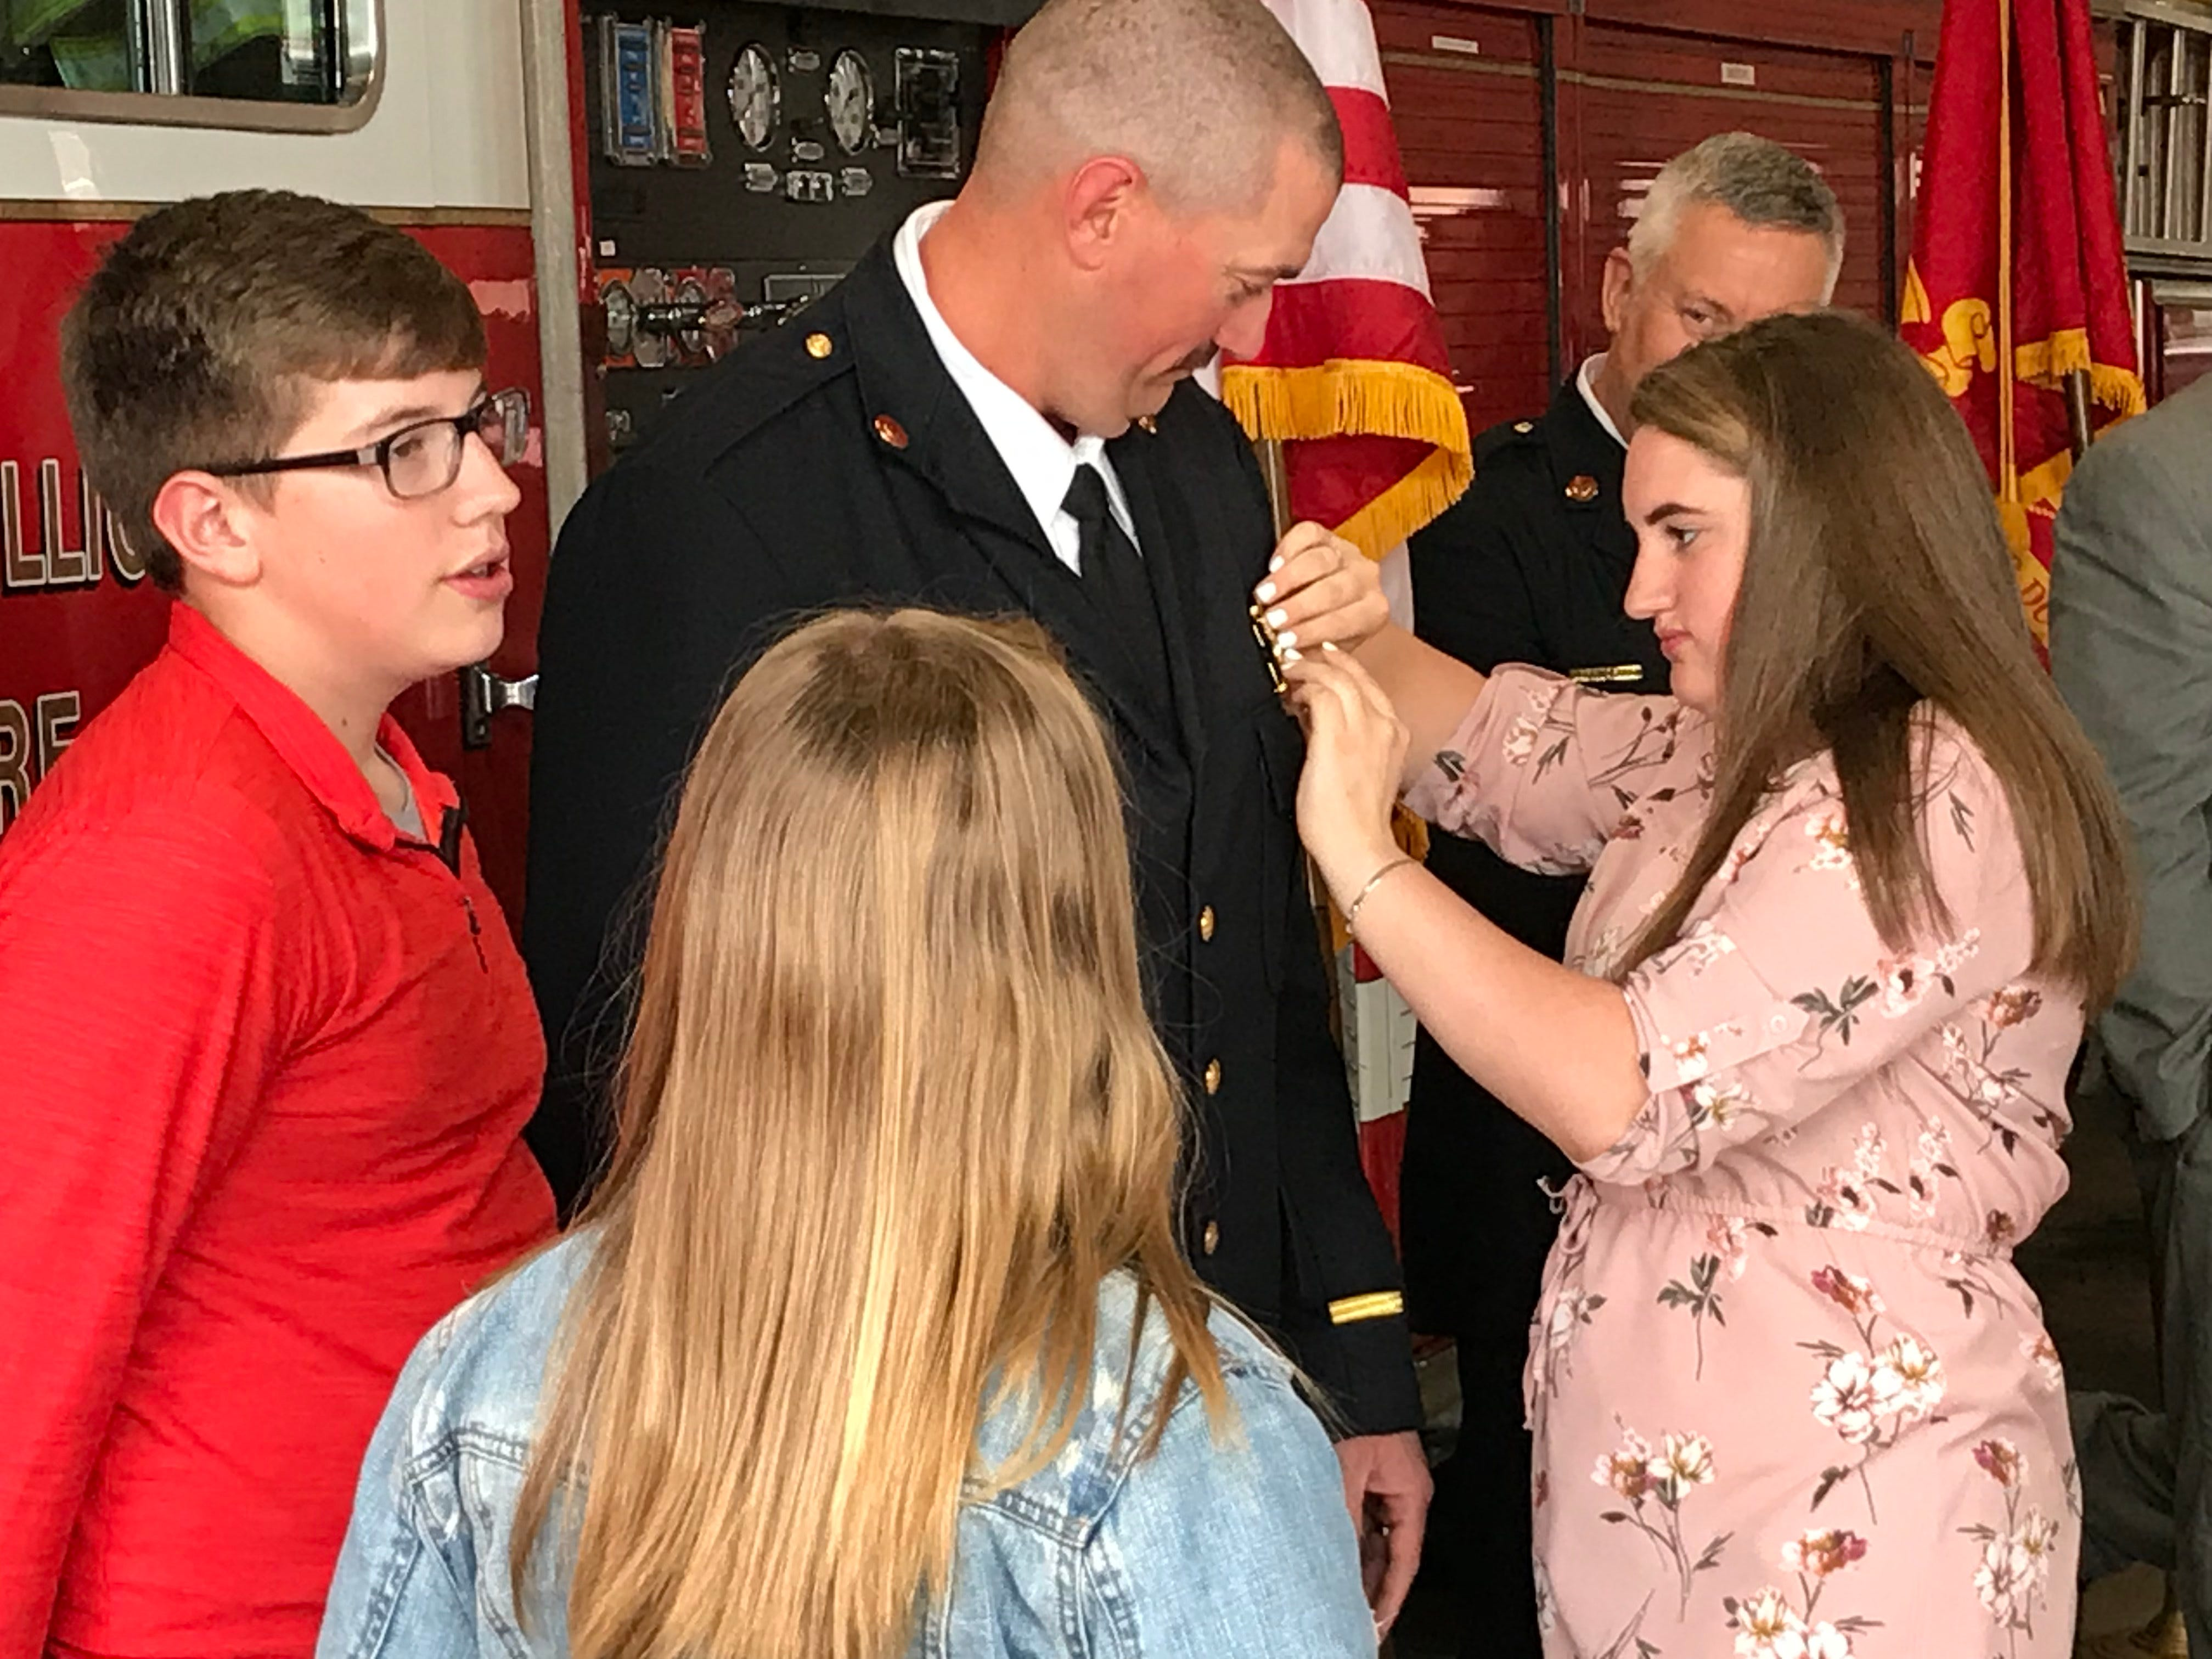 Chillicothe Fire Department's newest captain Ryan Wade watches as one of his daughters affix a pin to his jacket during a special swearing in and pinning ceremony for his promotion on Friday, April 26, 2019.